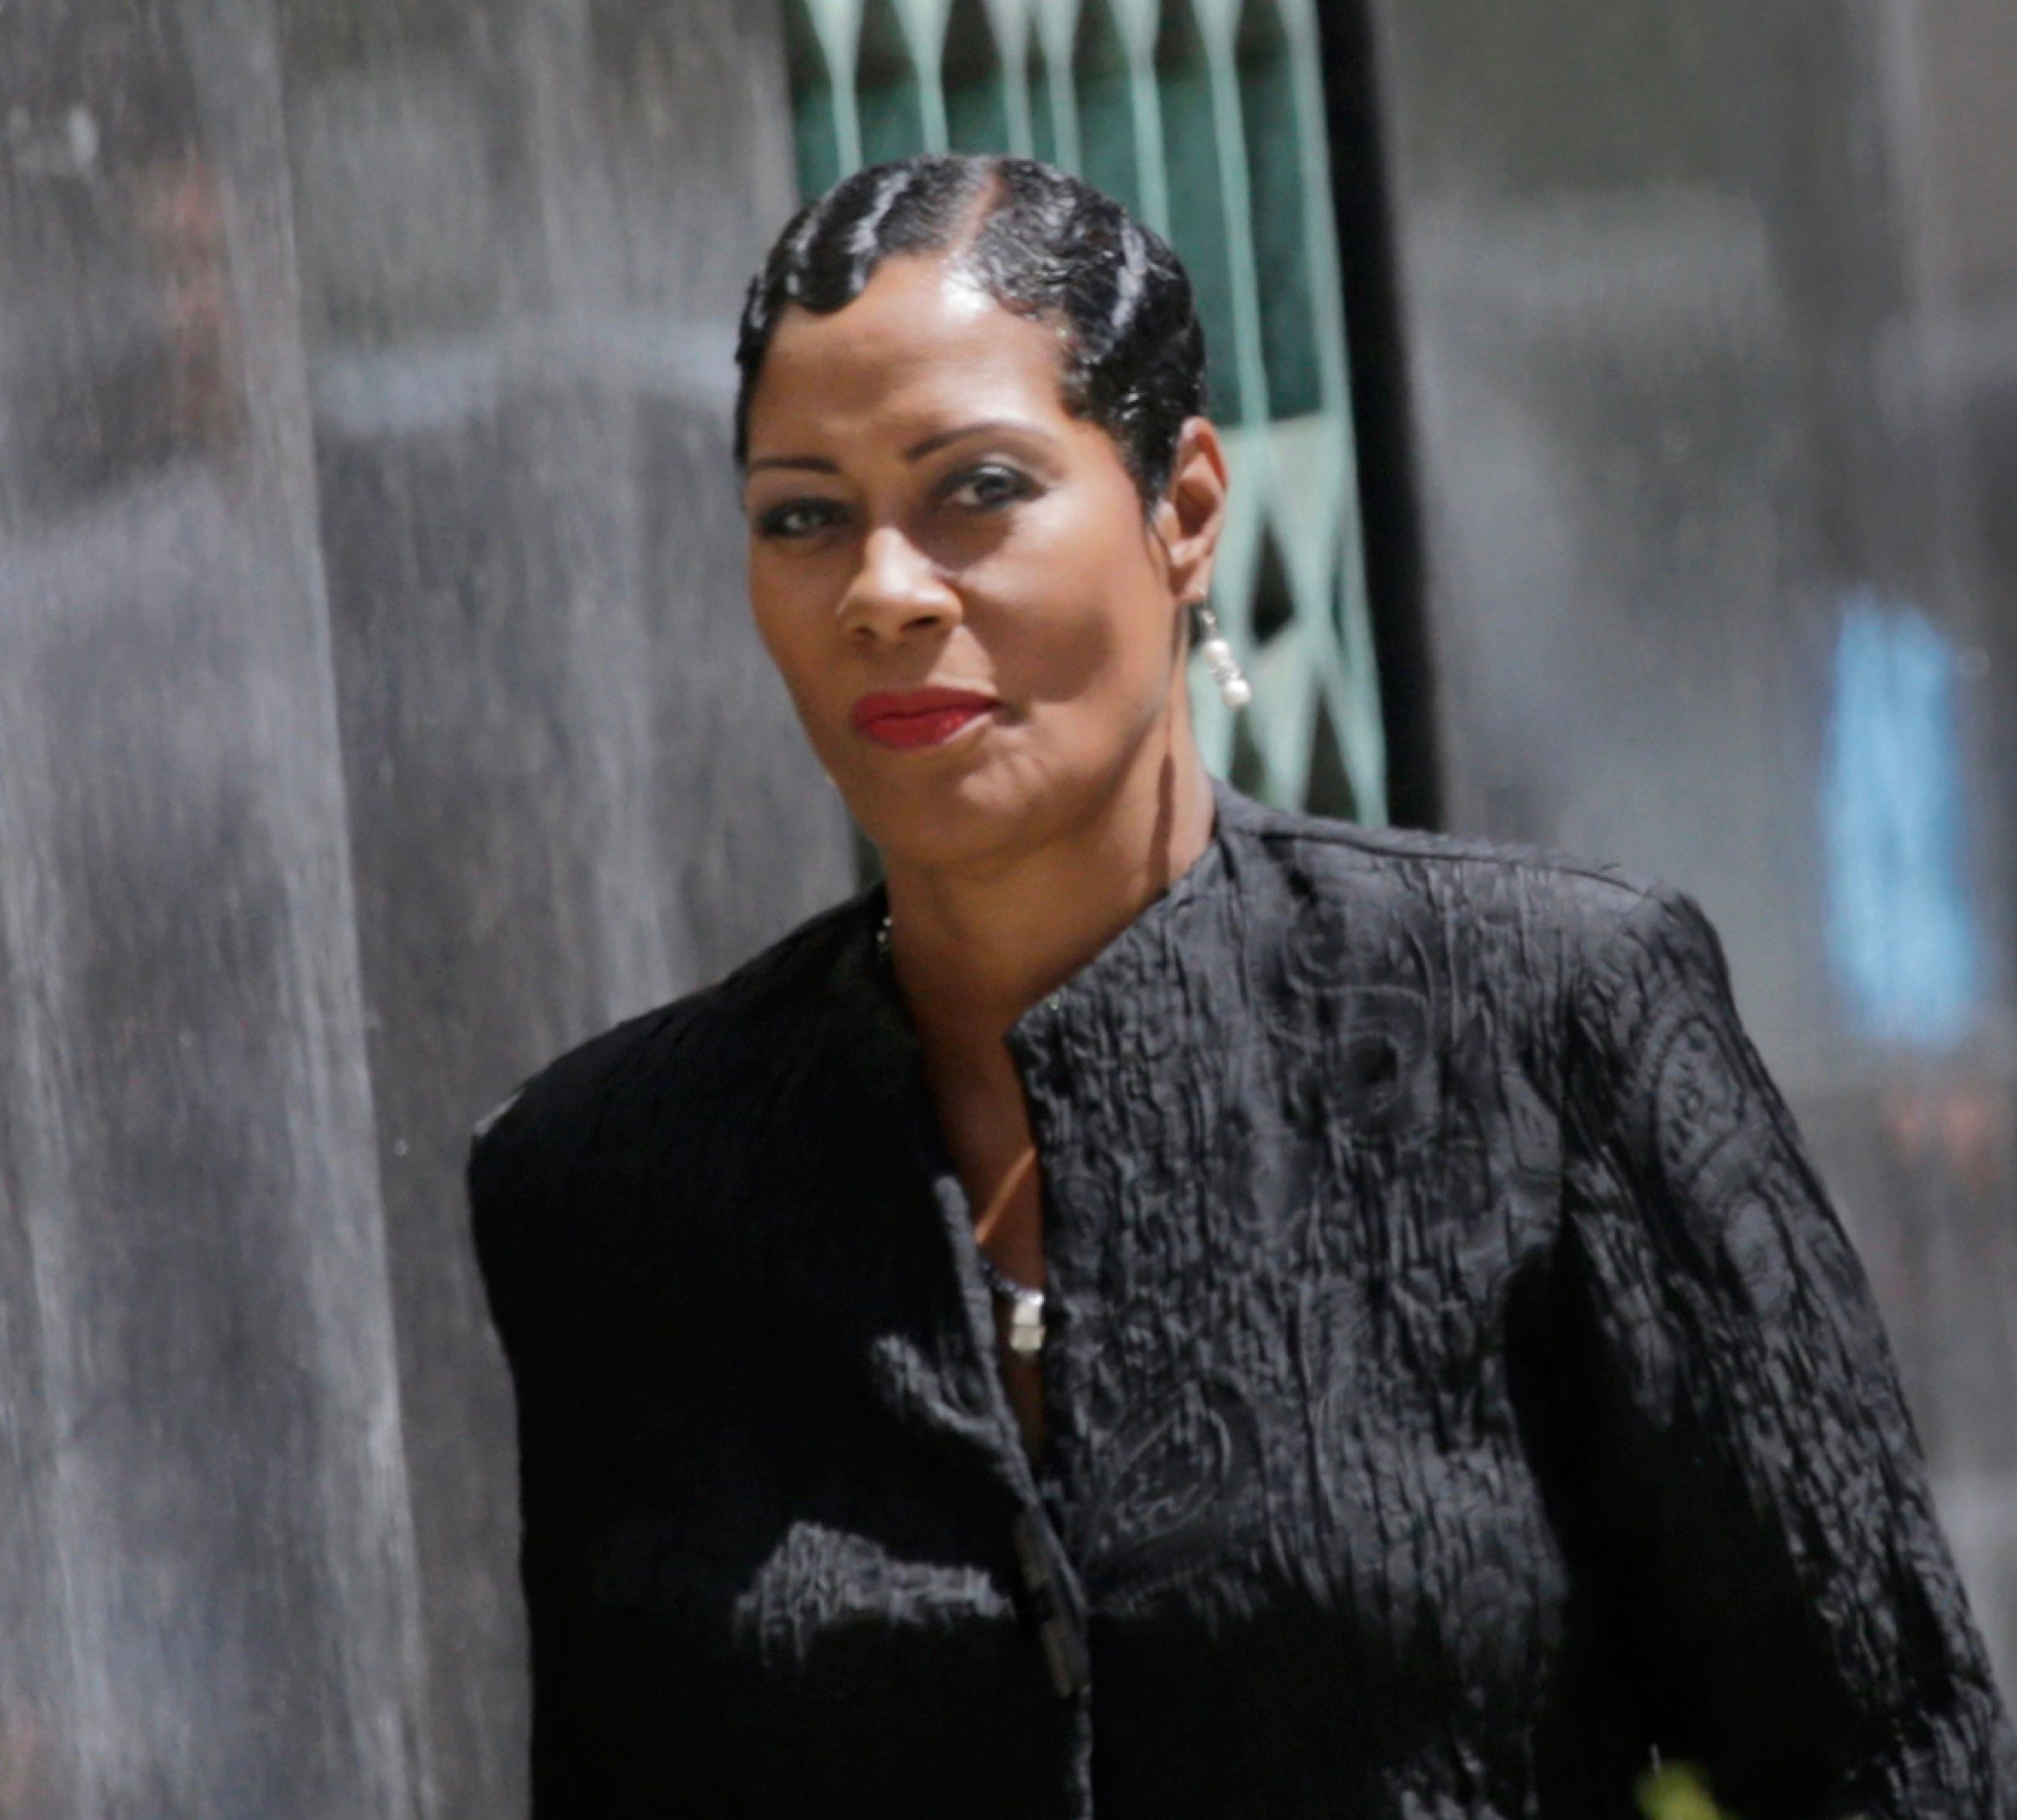 Monica Morgan walks into the federal courthouse in Detroit on Monday, July 31, 2017.